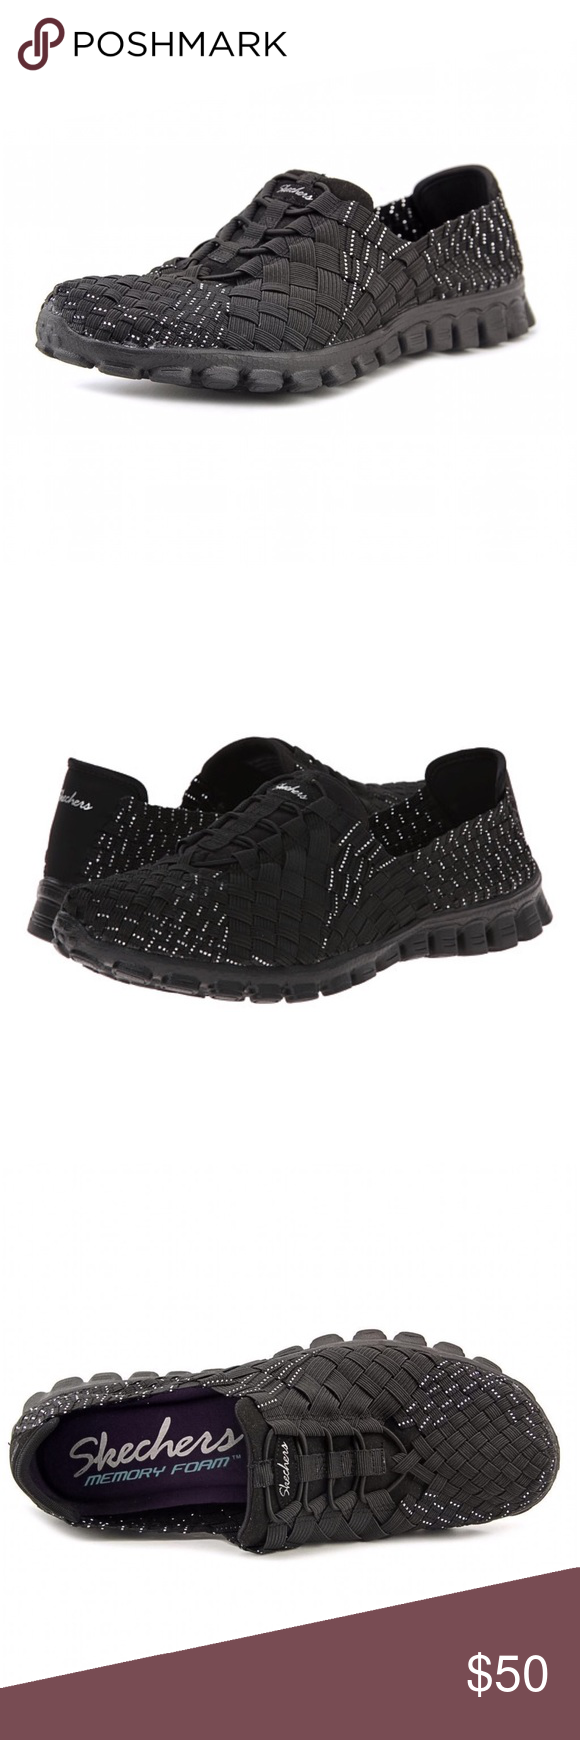 """SKECHERS Black EZ Flex Stretch Weave Walking Shoes NWT SKECHERS black & silver stretch-weave woven """"basket weave"""" walking shoes are magic!   *Metallic accent details for eye-catching style. *Slip-on construction with bungee lace system. *Soft fabric heel strip. *Unlined with a Memory Foam cushioned comfort insole for all-day comfort. *EZ Flex 2 shock absorbing flexible lightweight midsole. *Flexible rubber traction outsole. *Weight: 6 oz  CLOSET RULES: Bundle Discounts * No Trades * Smoke…"""